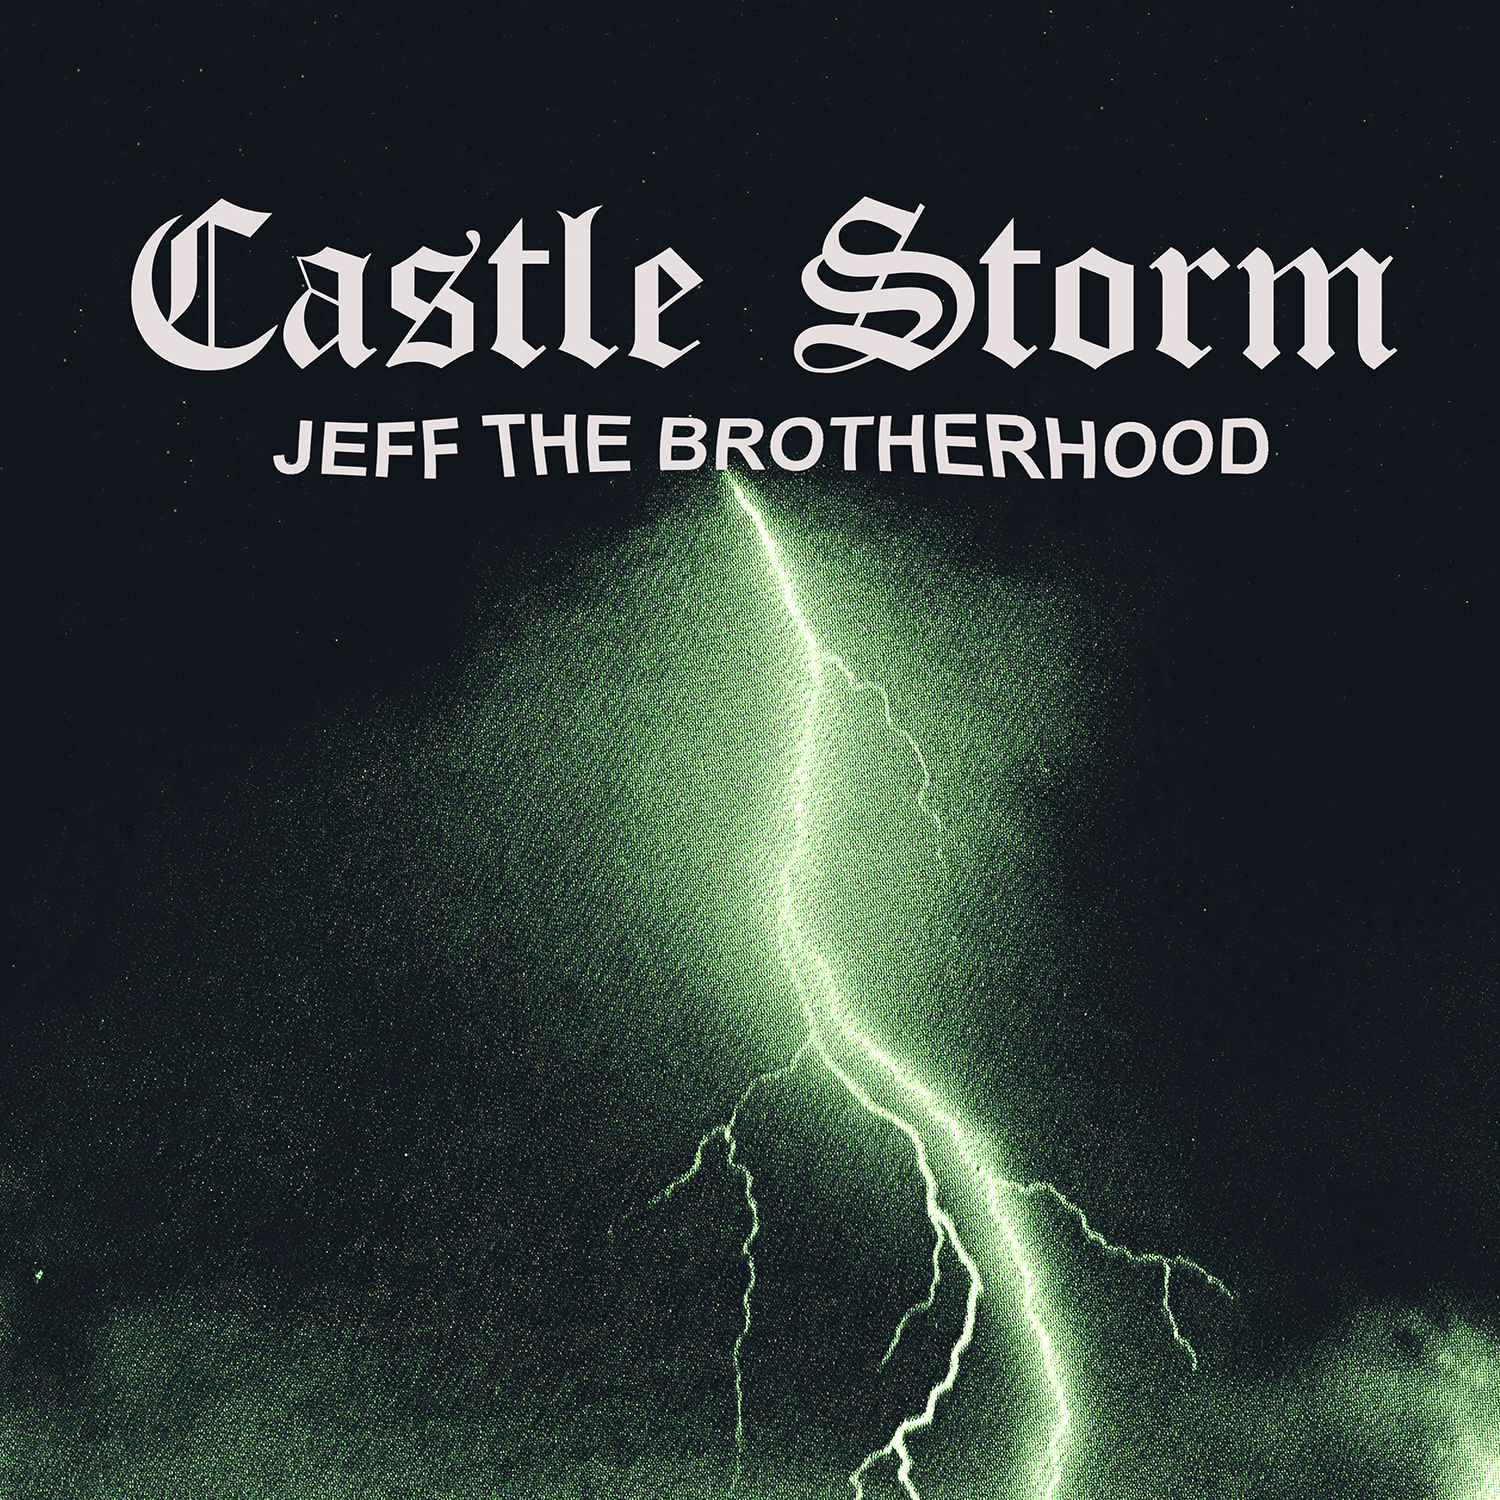 Jeff the Brotherhood - Castle Storm LP